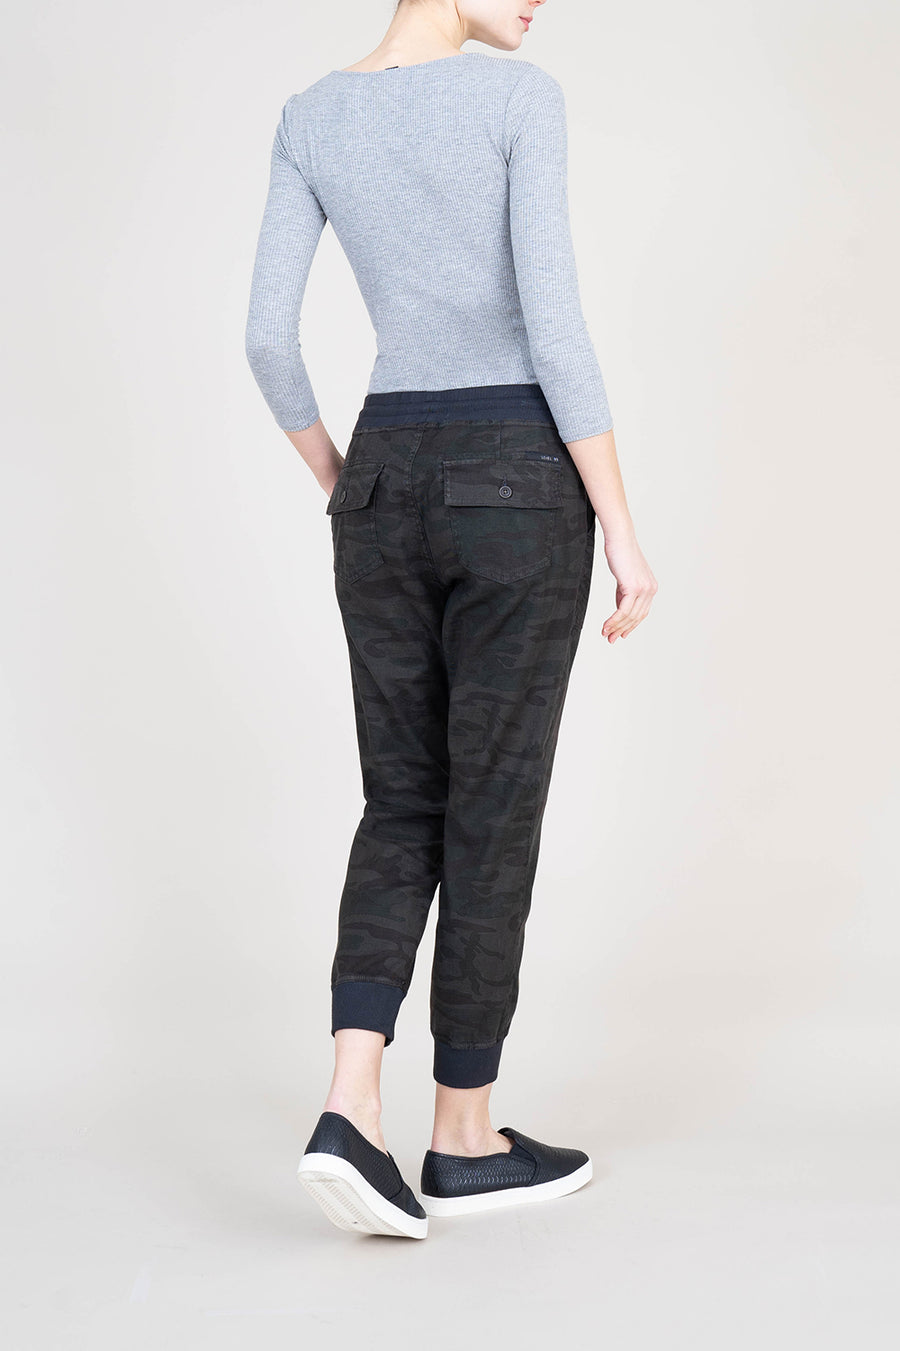 Gabrielle Midnight Camo Jogger - level99jeans